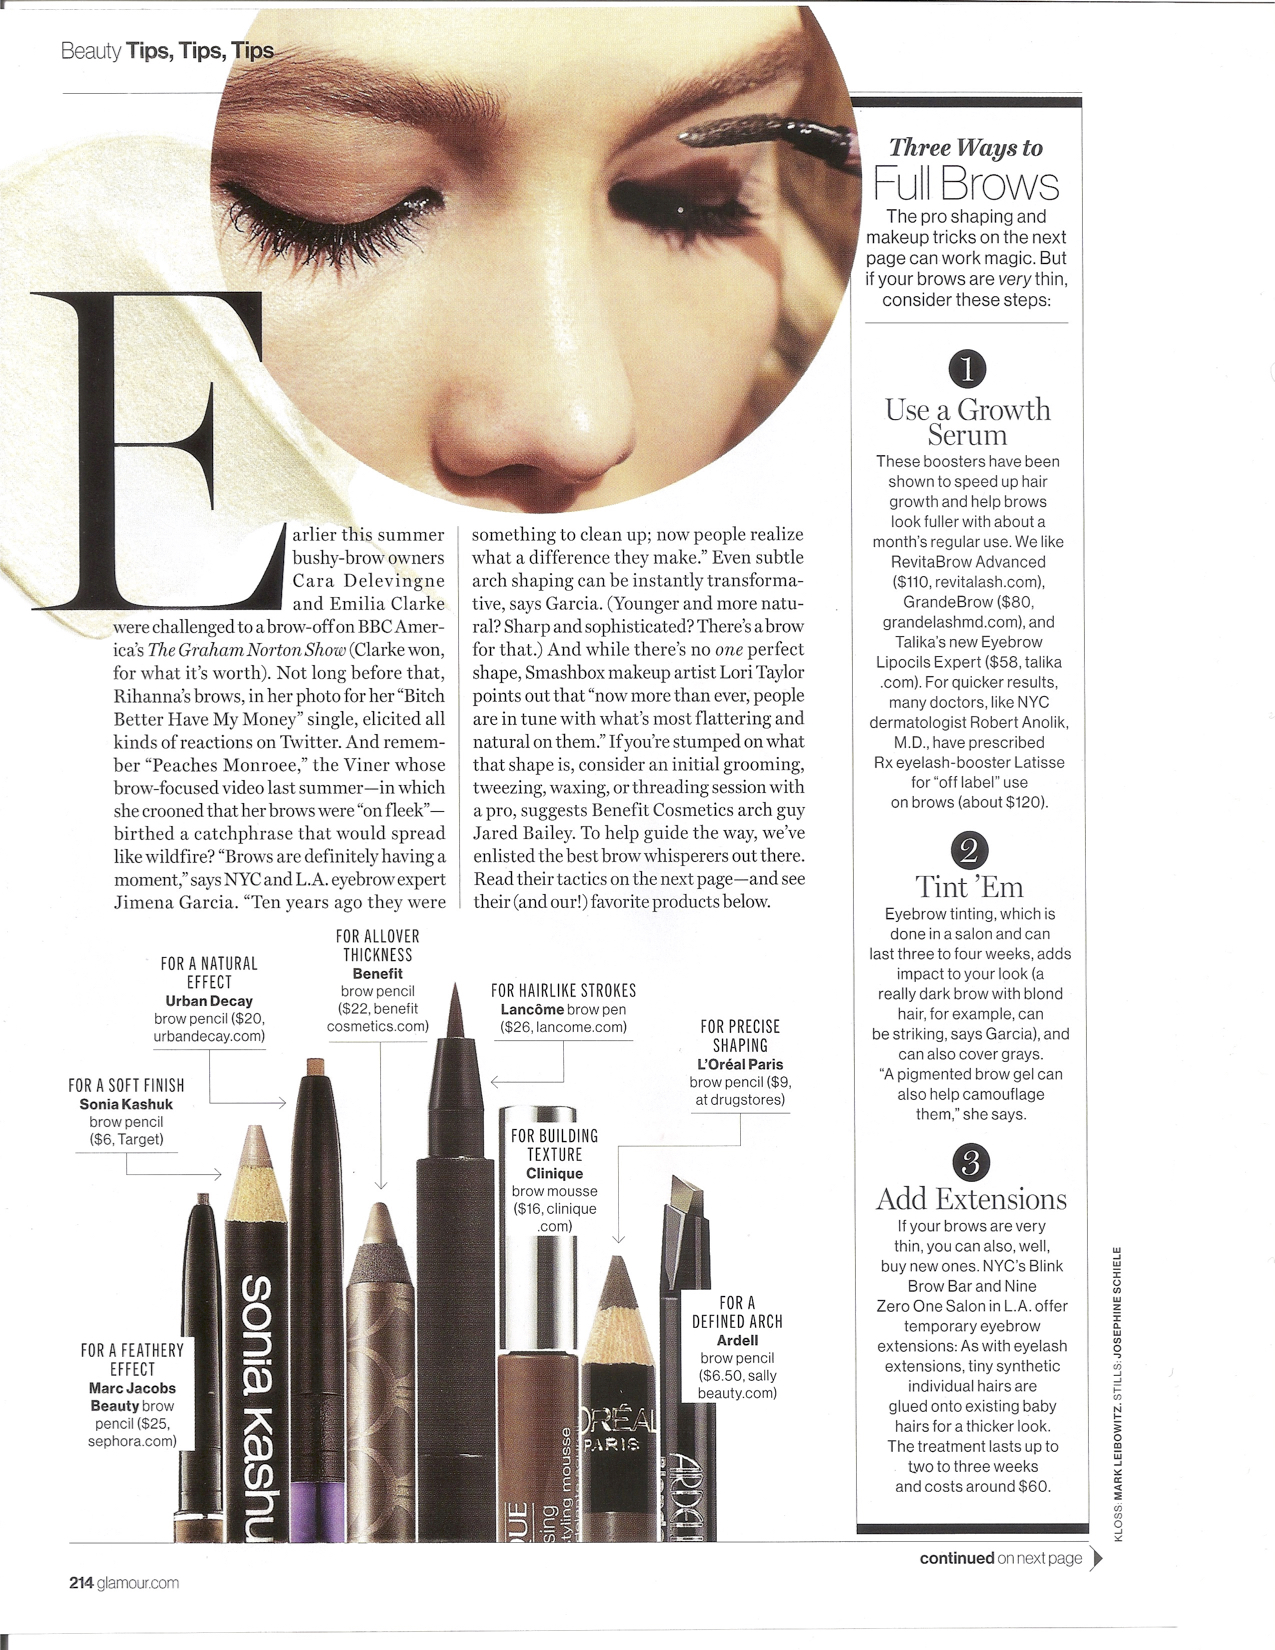 Glamour- Your Best Brows Ever, October 2015 pg2.jpg